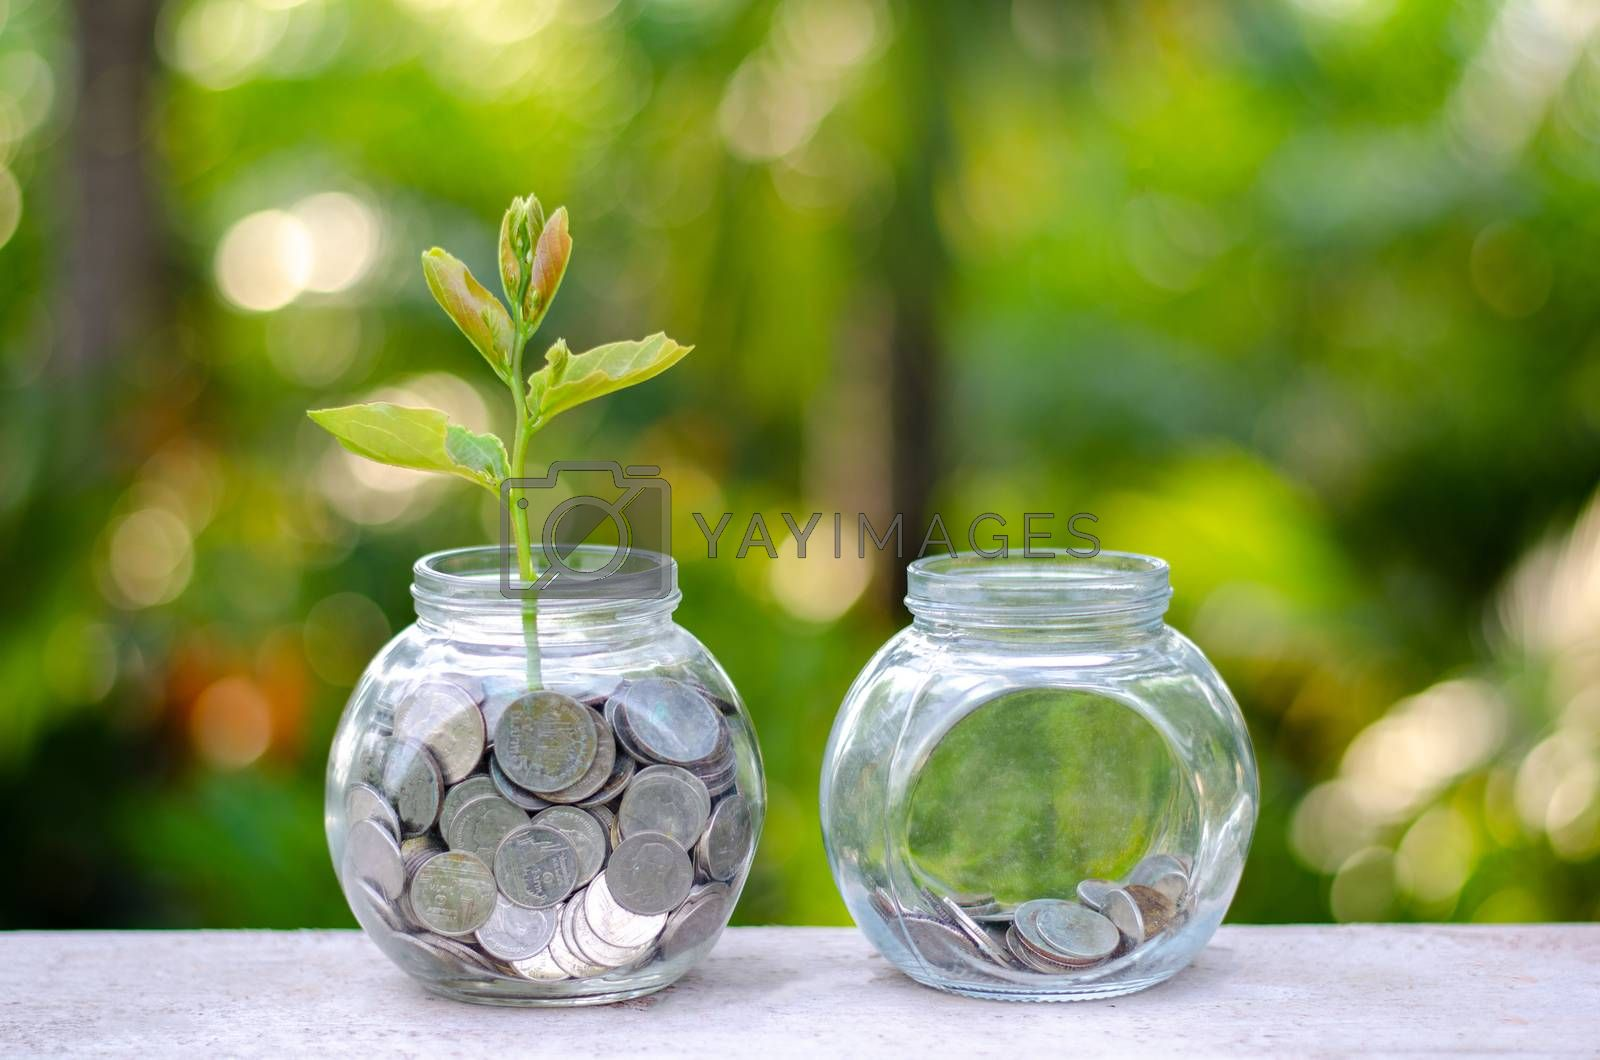 Coin tree Glass Jar Plant growing from coins outside the glass jar on blurred green natural background money saving and investment financial concept by Sarayut